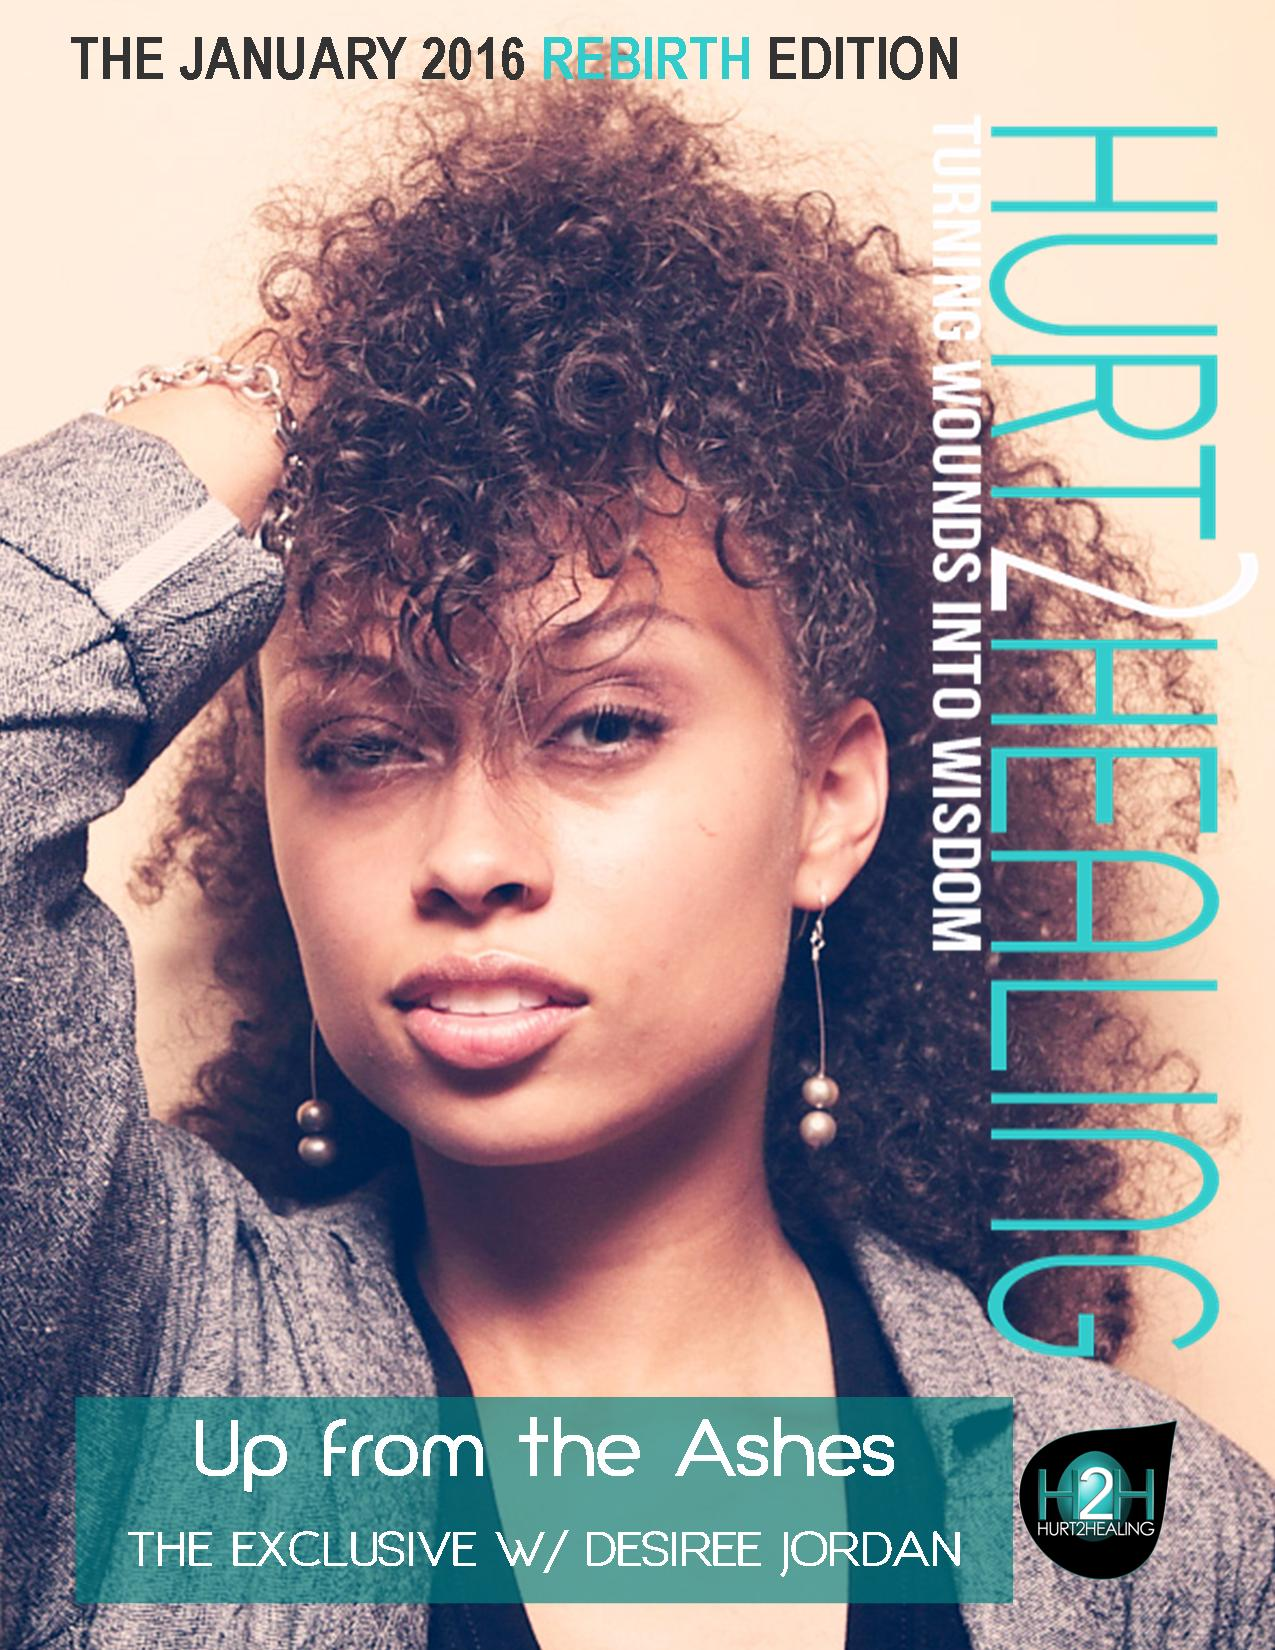 [NEW COVER] Up from the Ashes: The EXCLUSIVE w/ Desiree Jordan